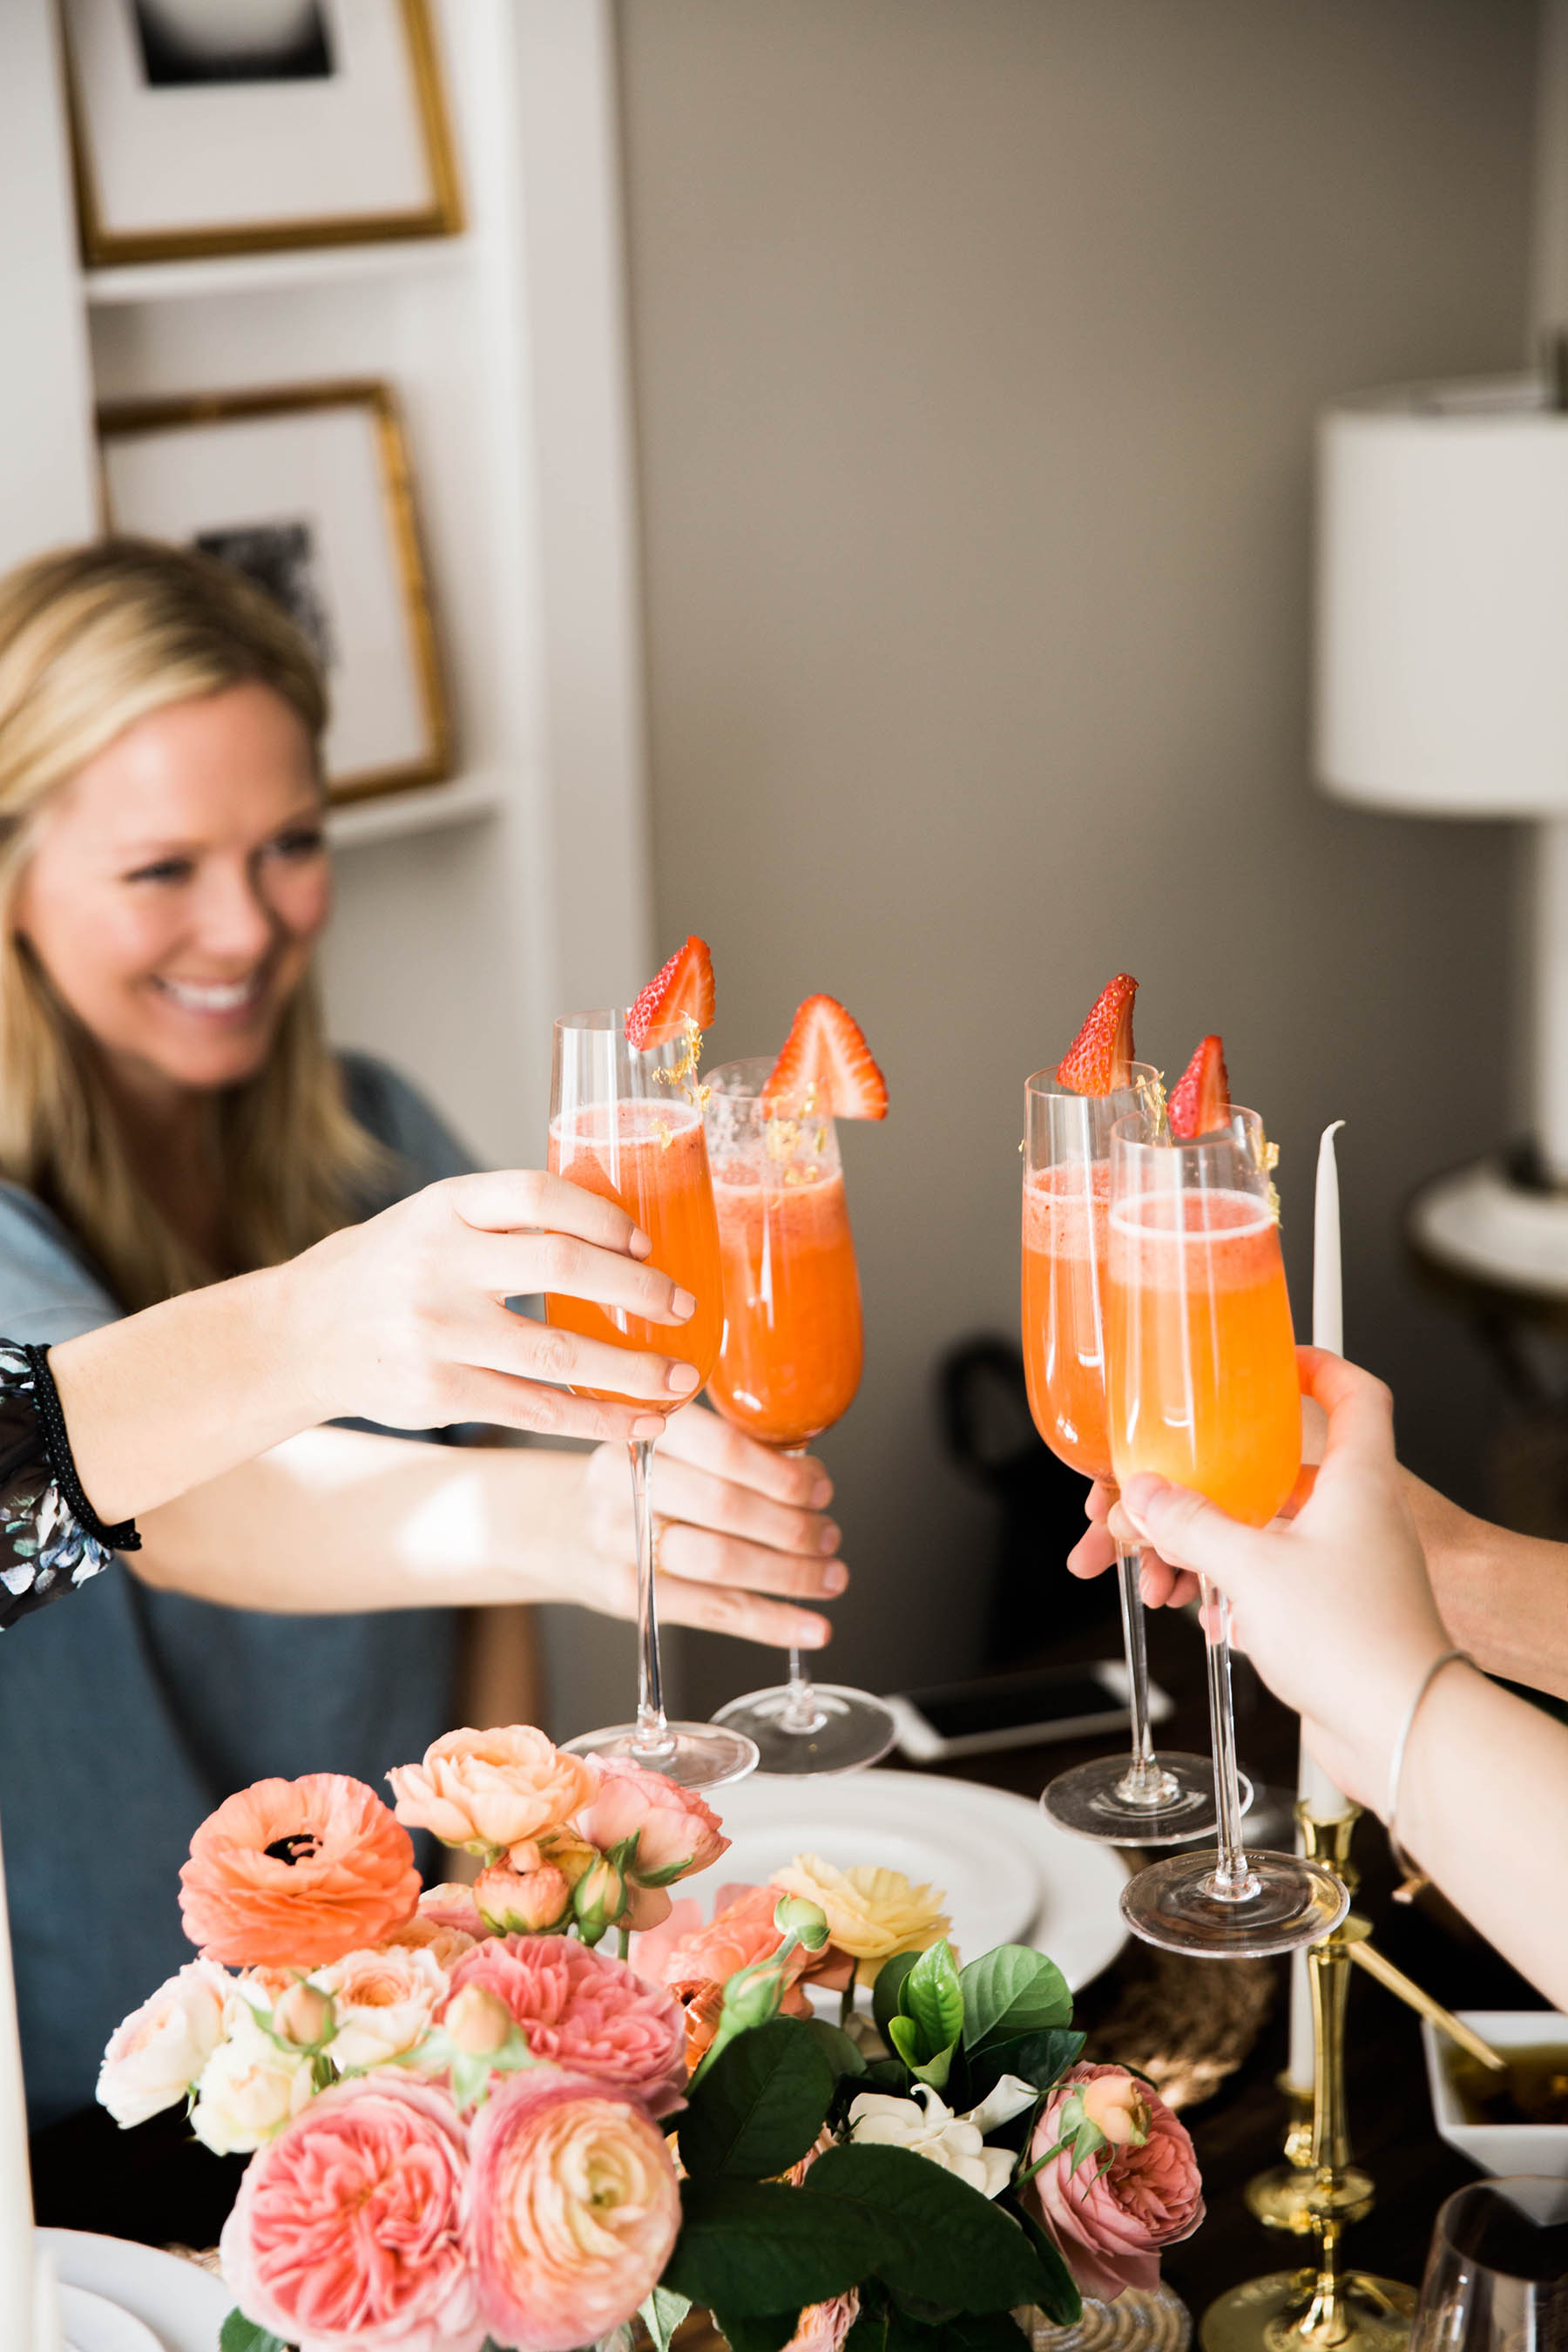 san francisco bloggers cheers with bellinis at a spring brunch